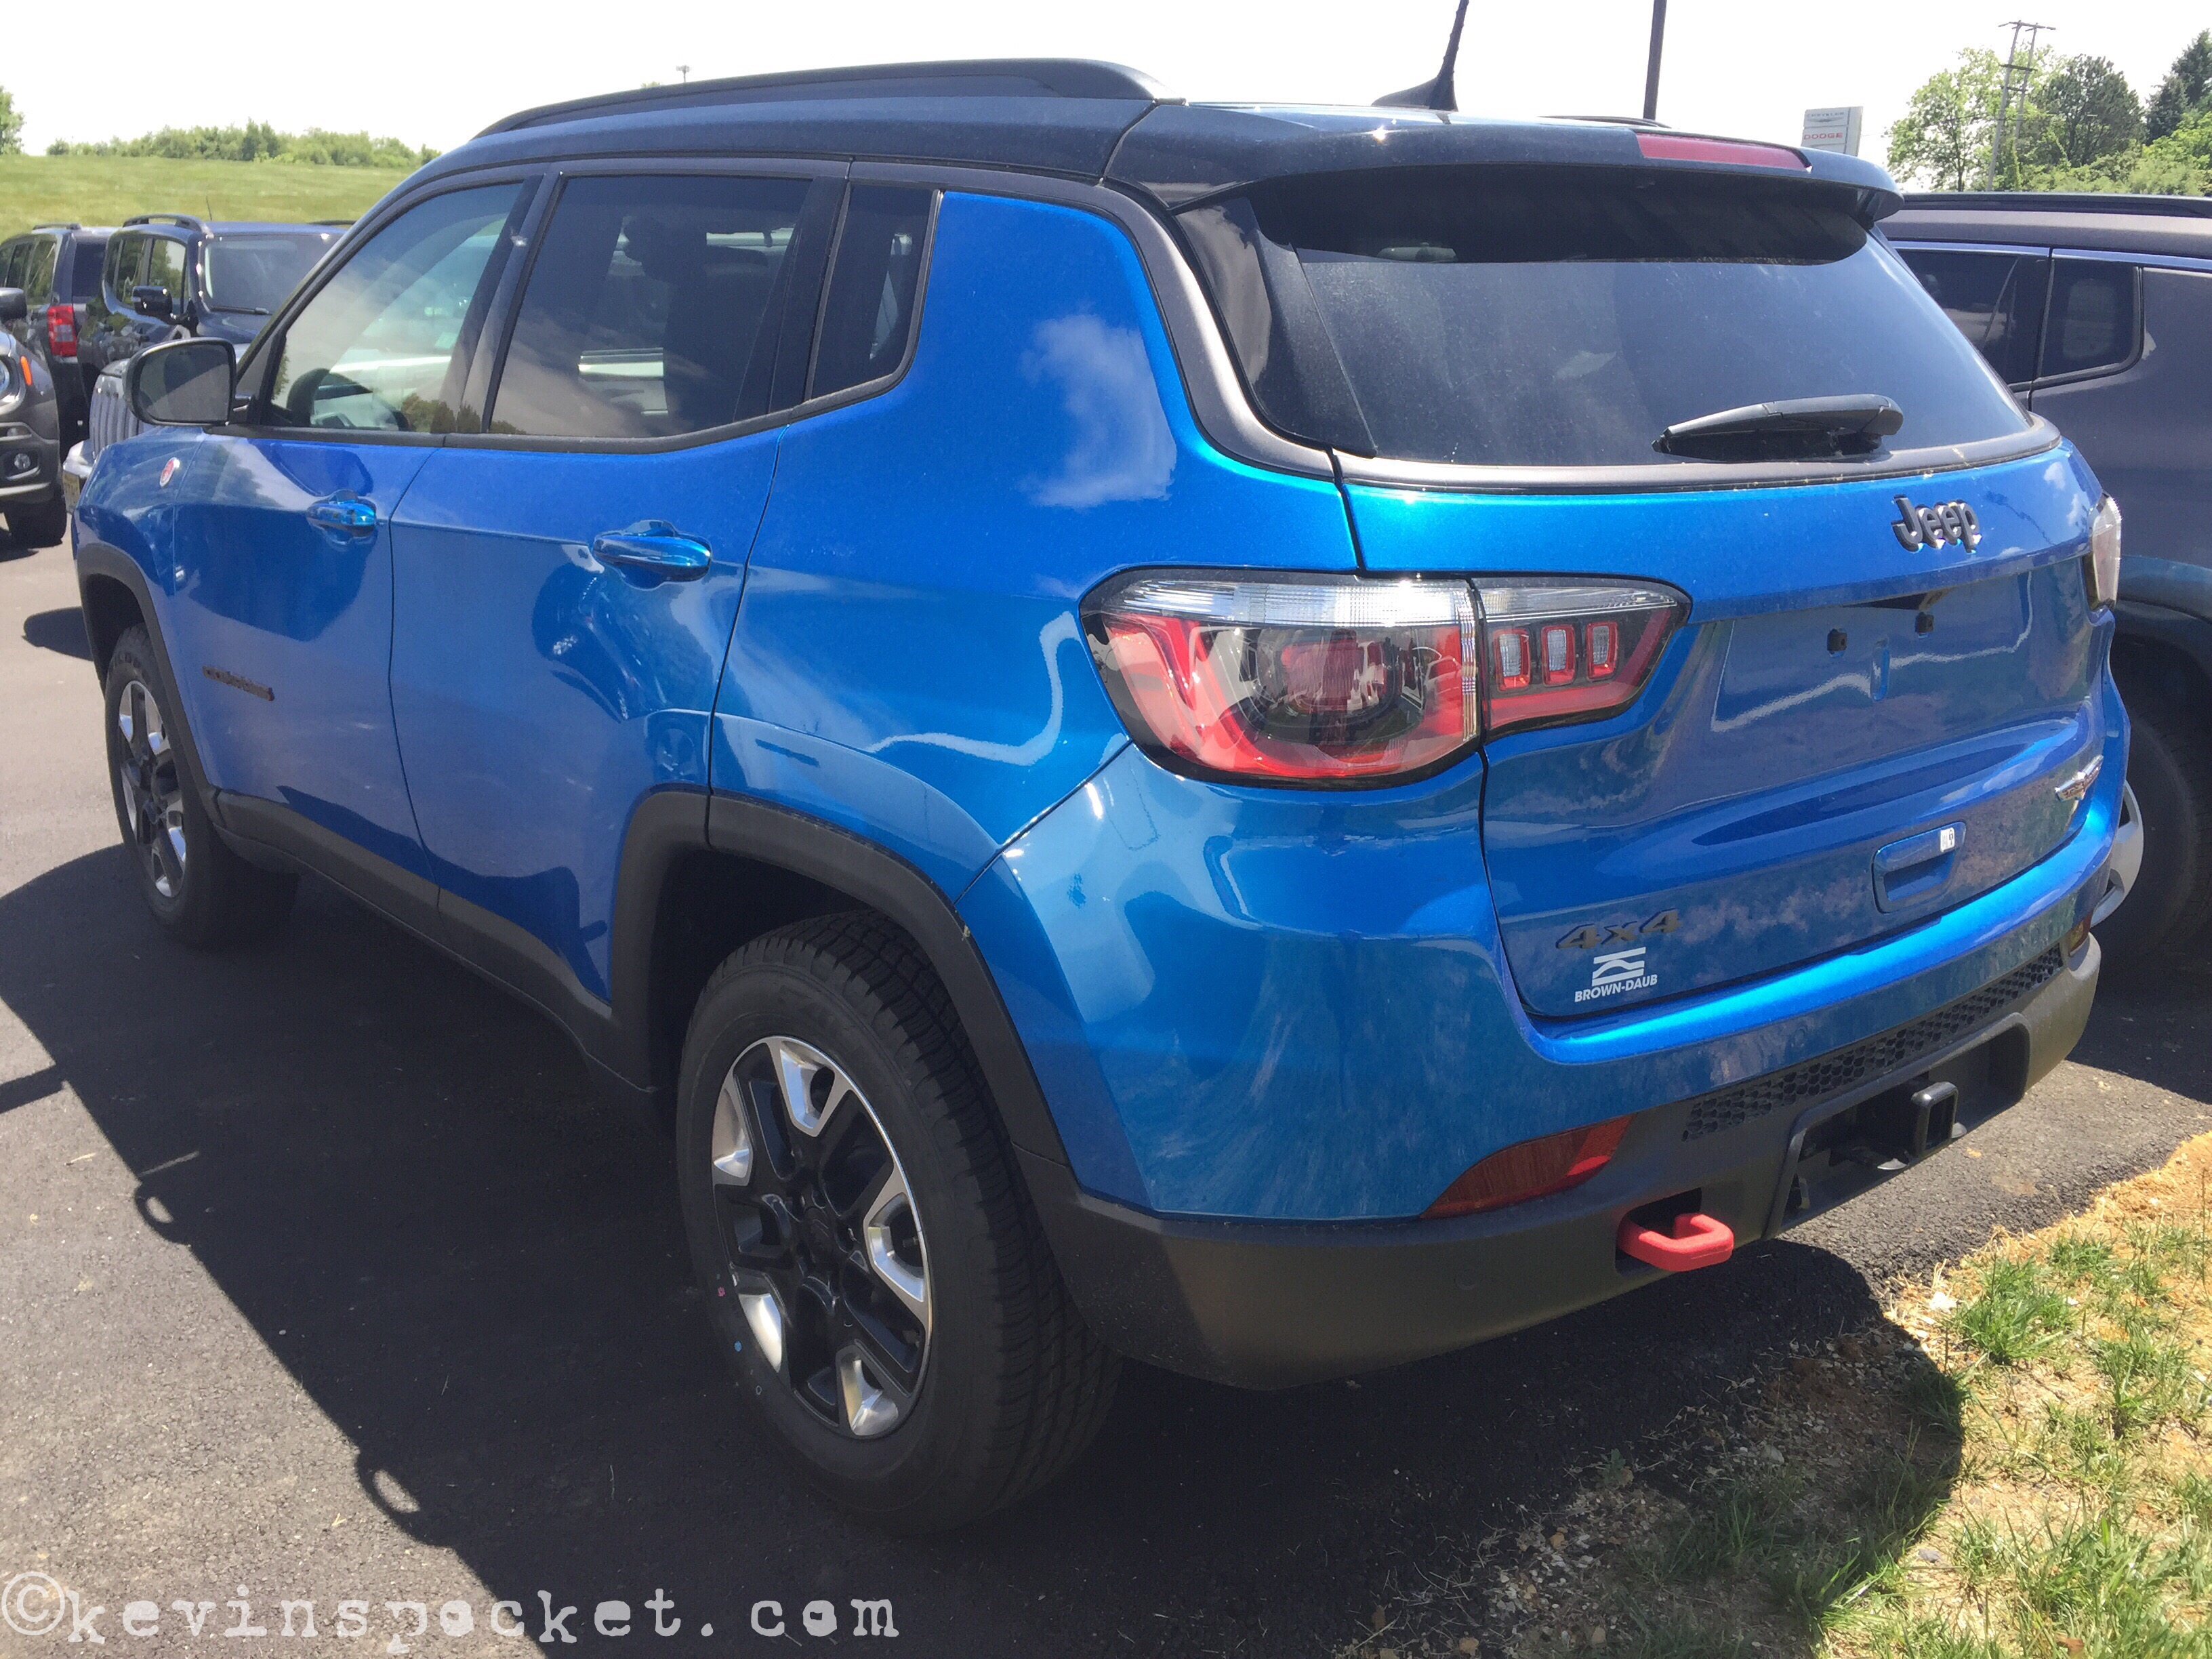 Laser Blue Compass Trailhawk spotted – kevinspocket